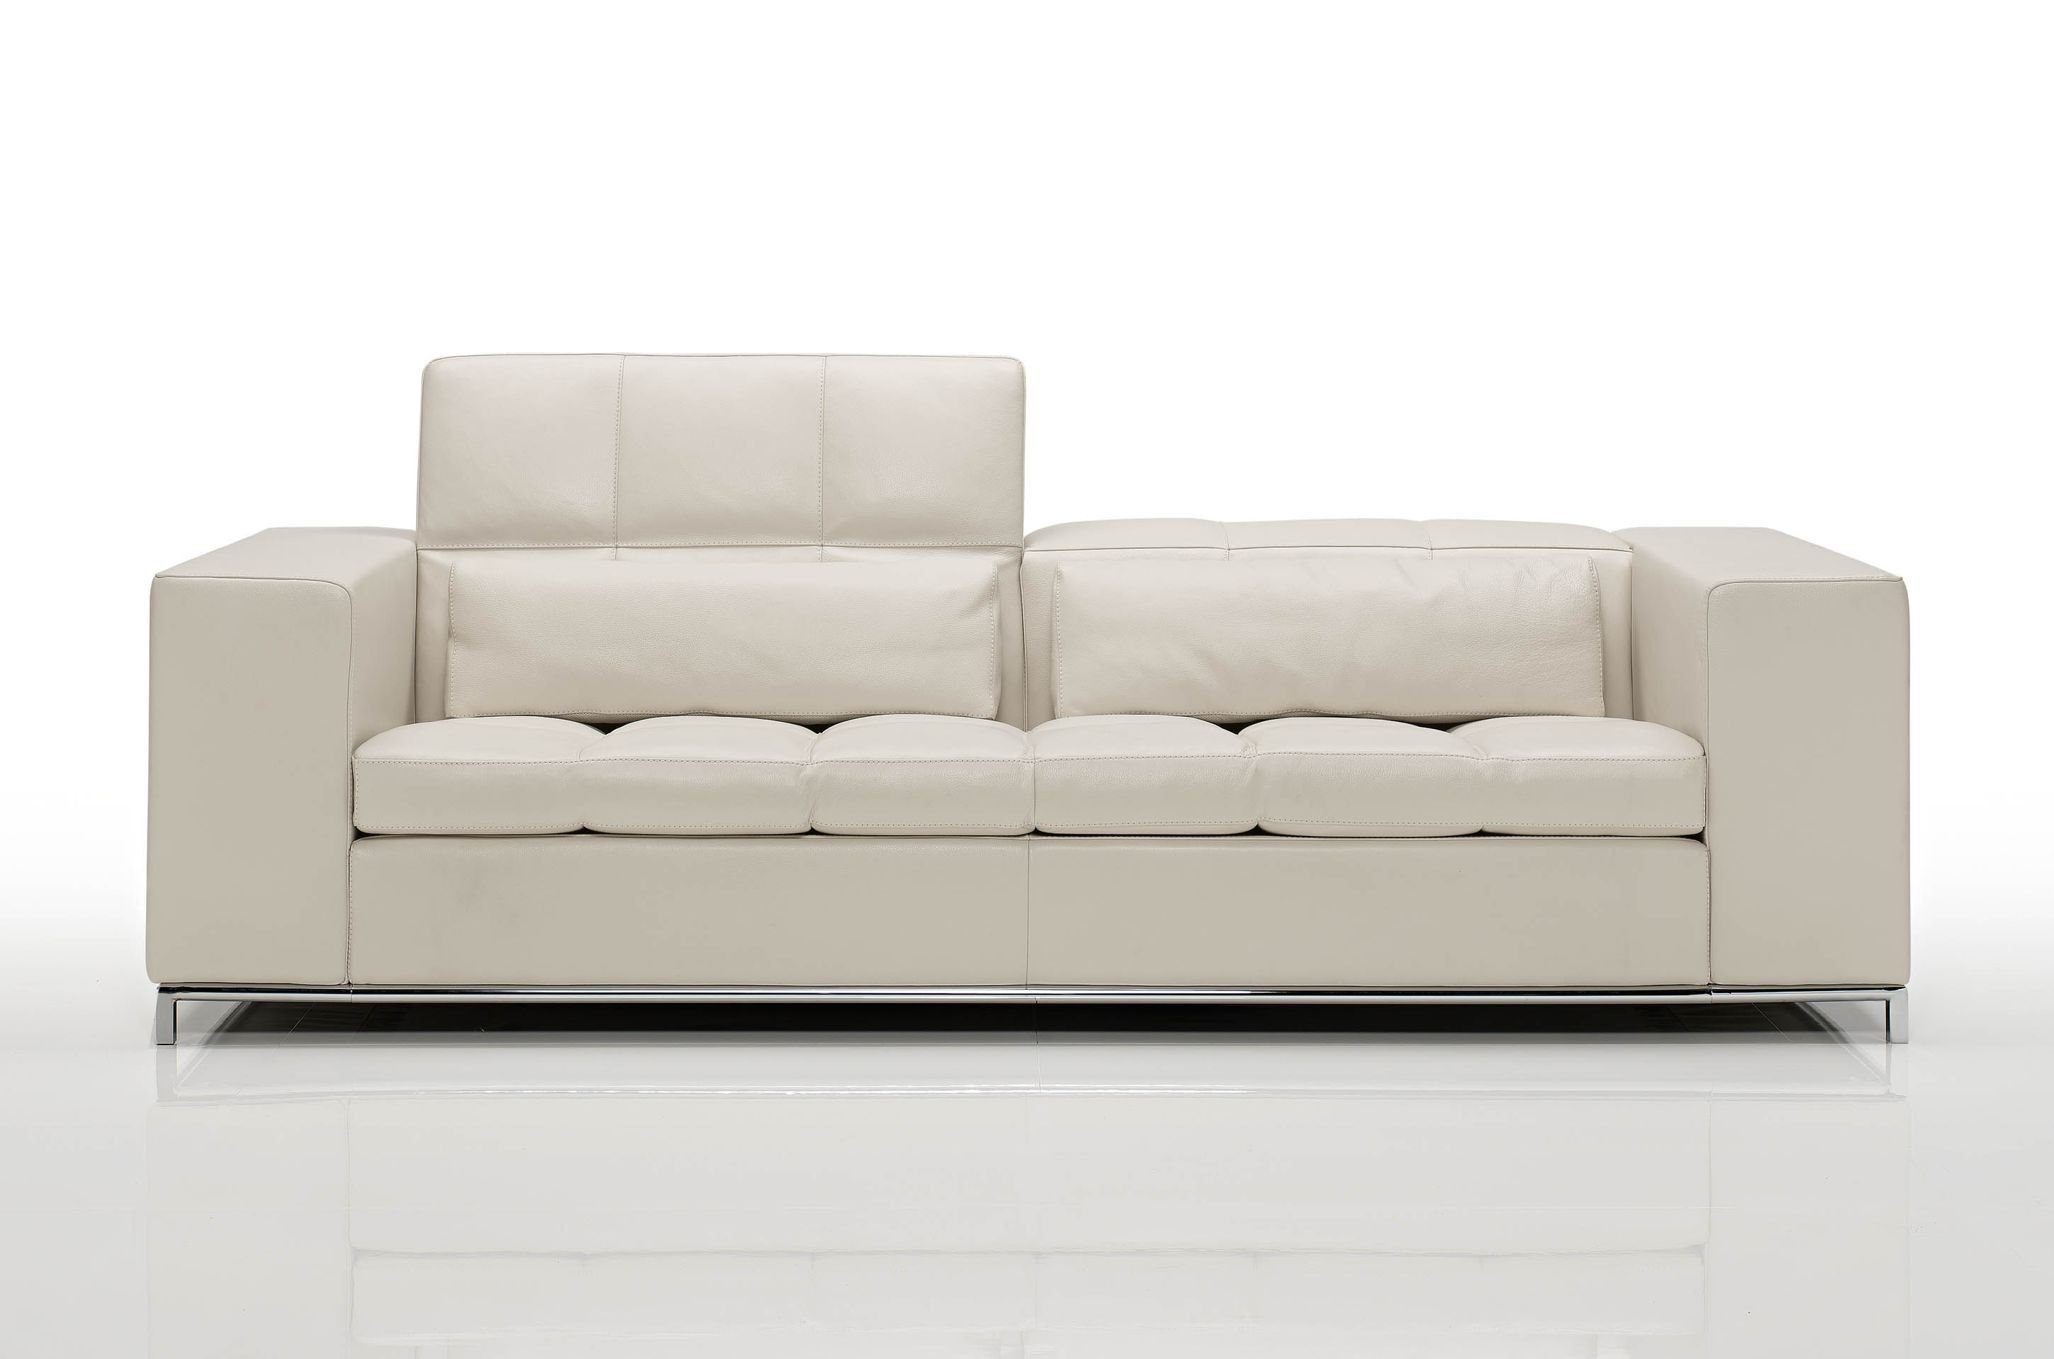 Awesome trend modern furniture ct 38 for your small home decor inspiration with modern furniture ct